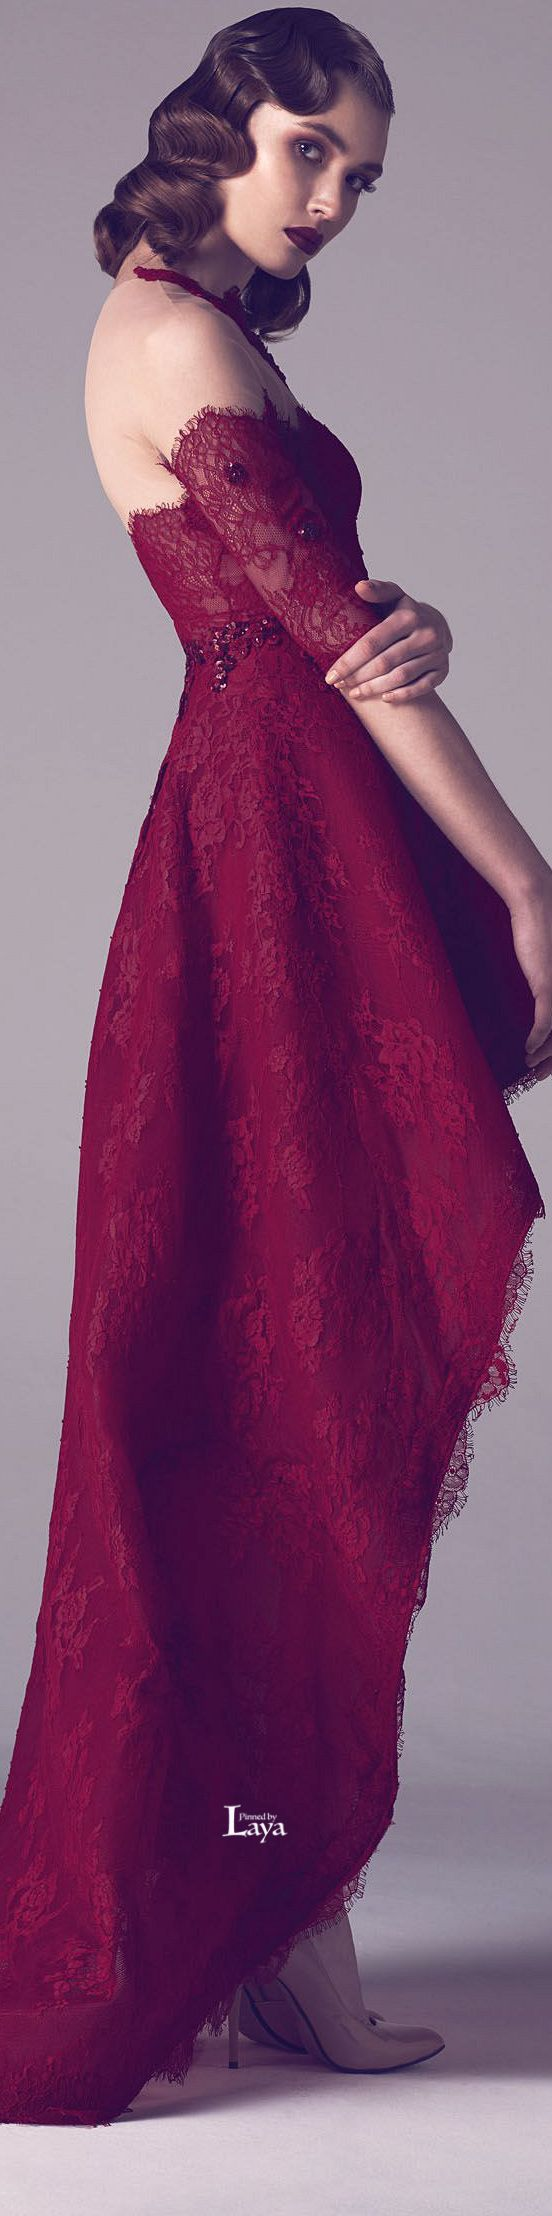 295 best Red Gowns images on Pinterest   Night out dresses, Little ...